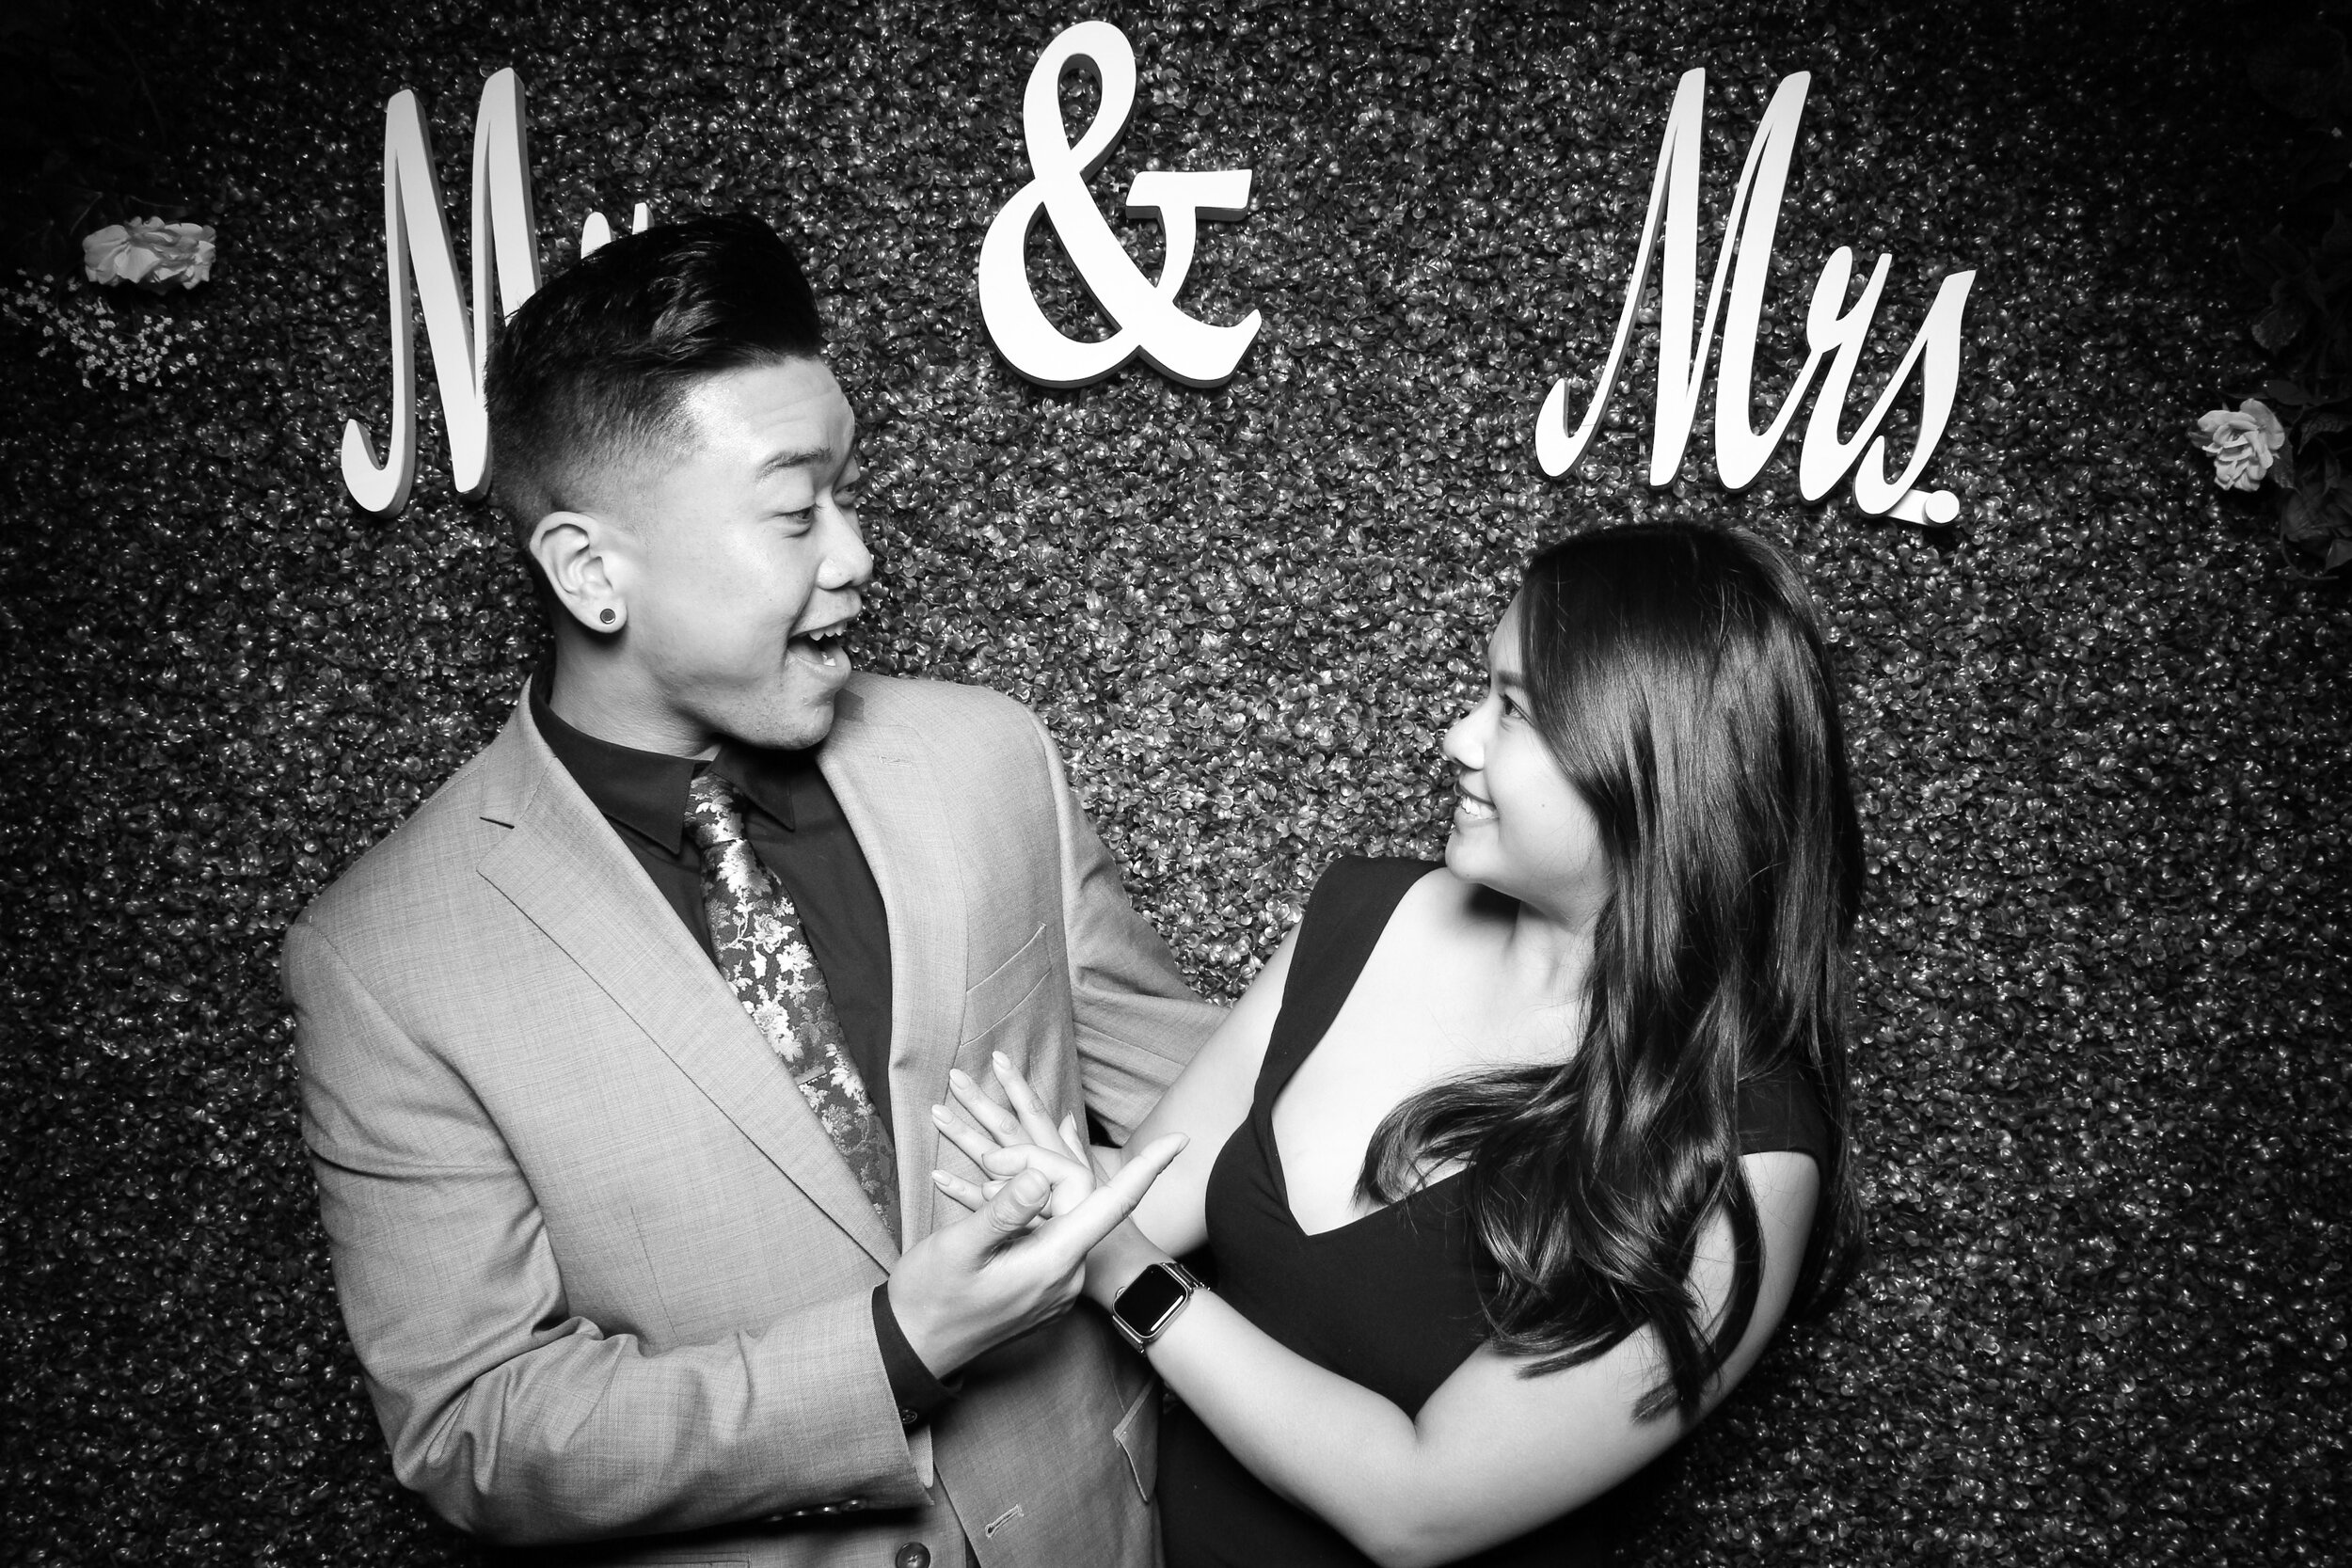 Green_Hedge_Ivy_Wall_Backdrop_Photo_Booth_Rental_Chicago_12.jpg